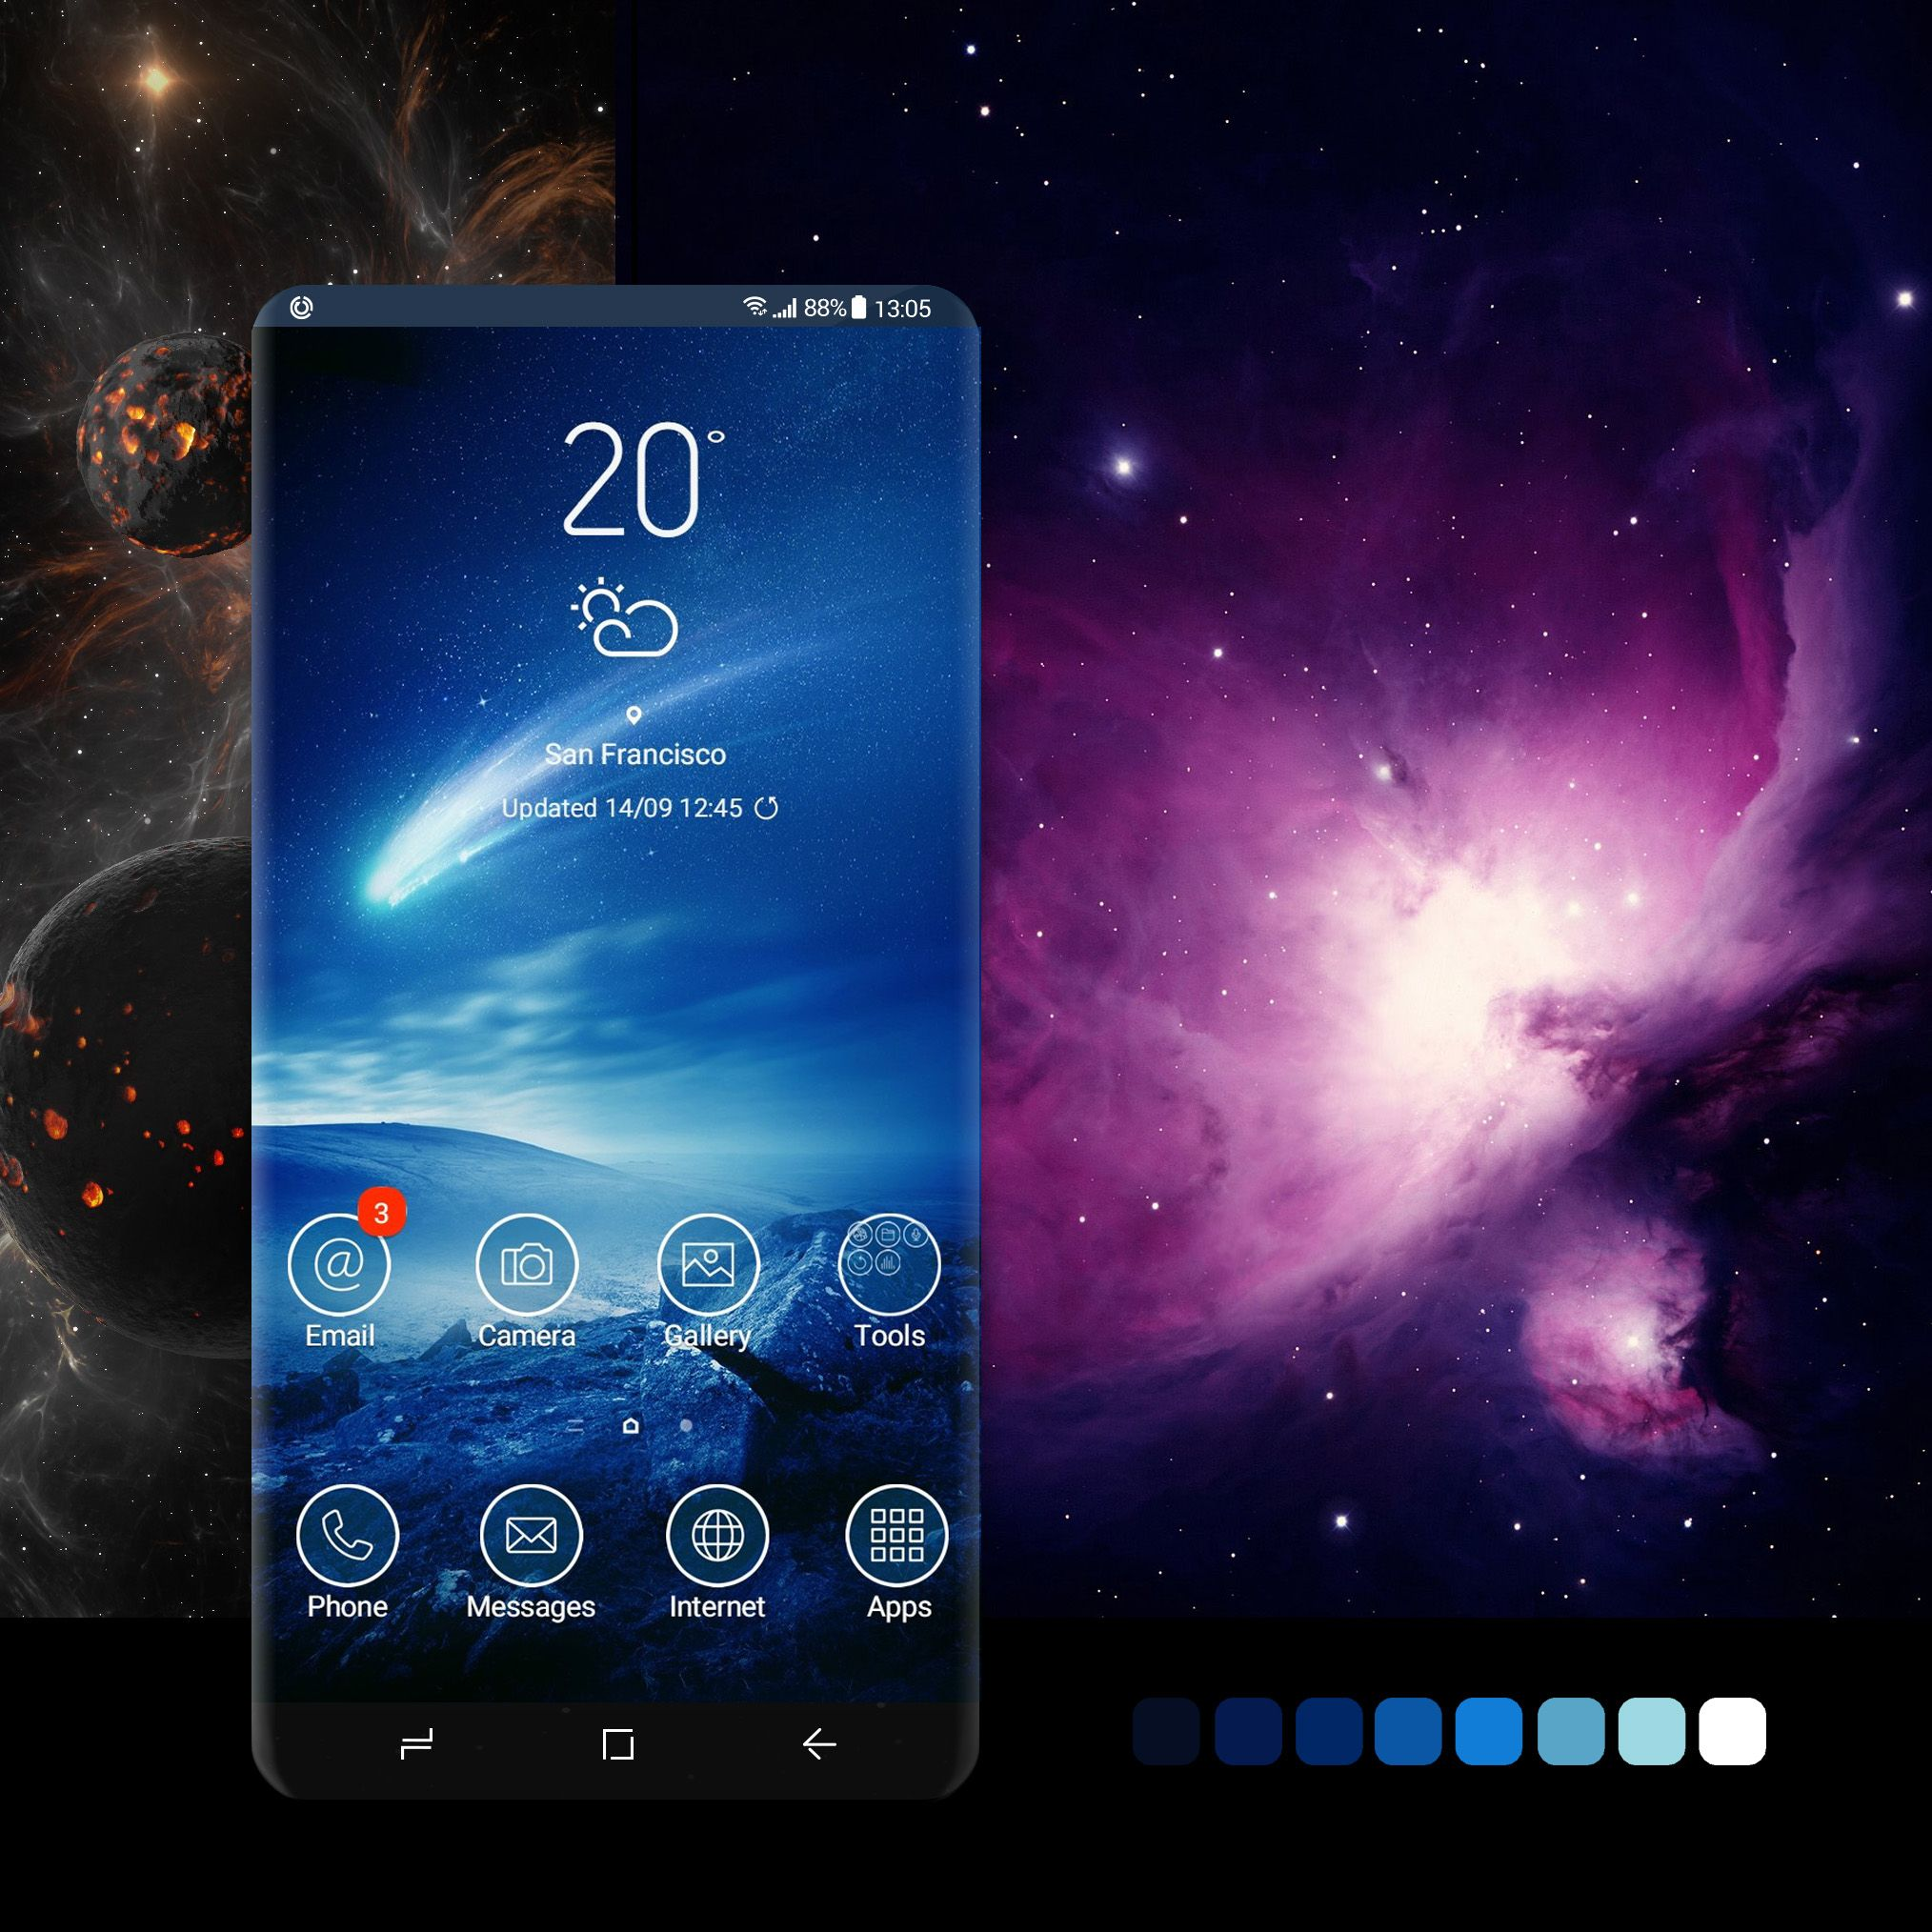 Shooting Star theme #wallpaper, #android, #phone